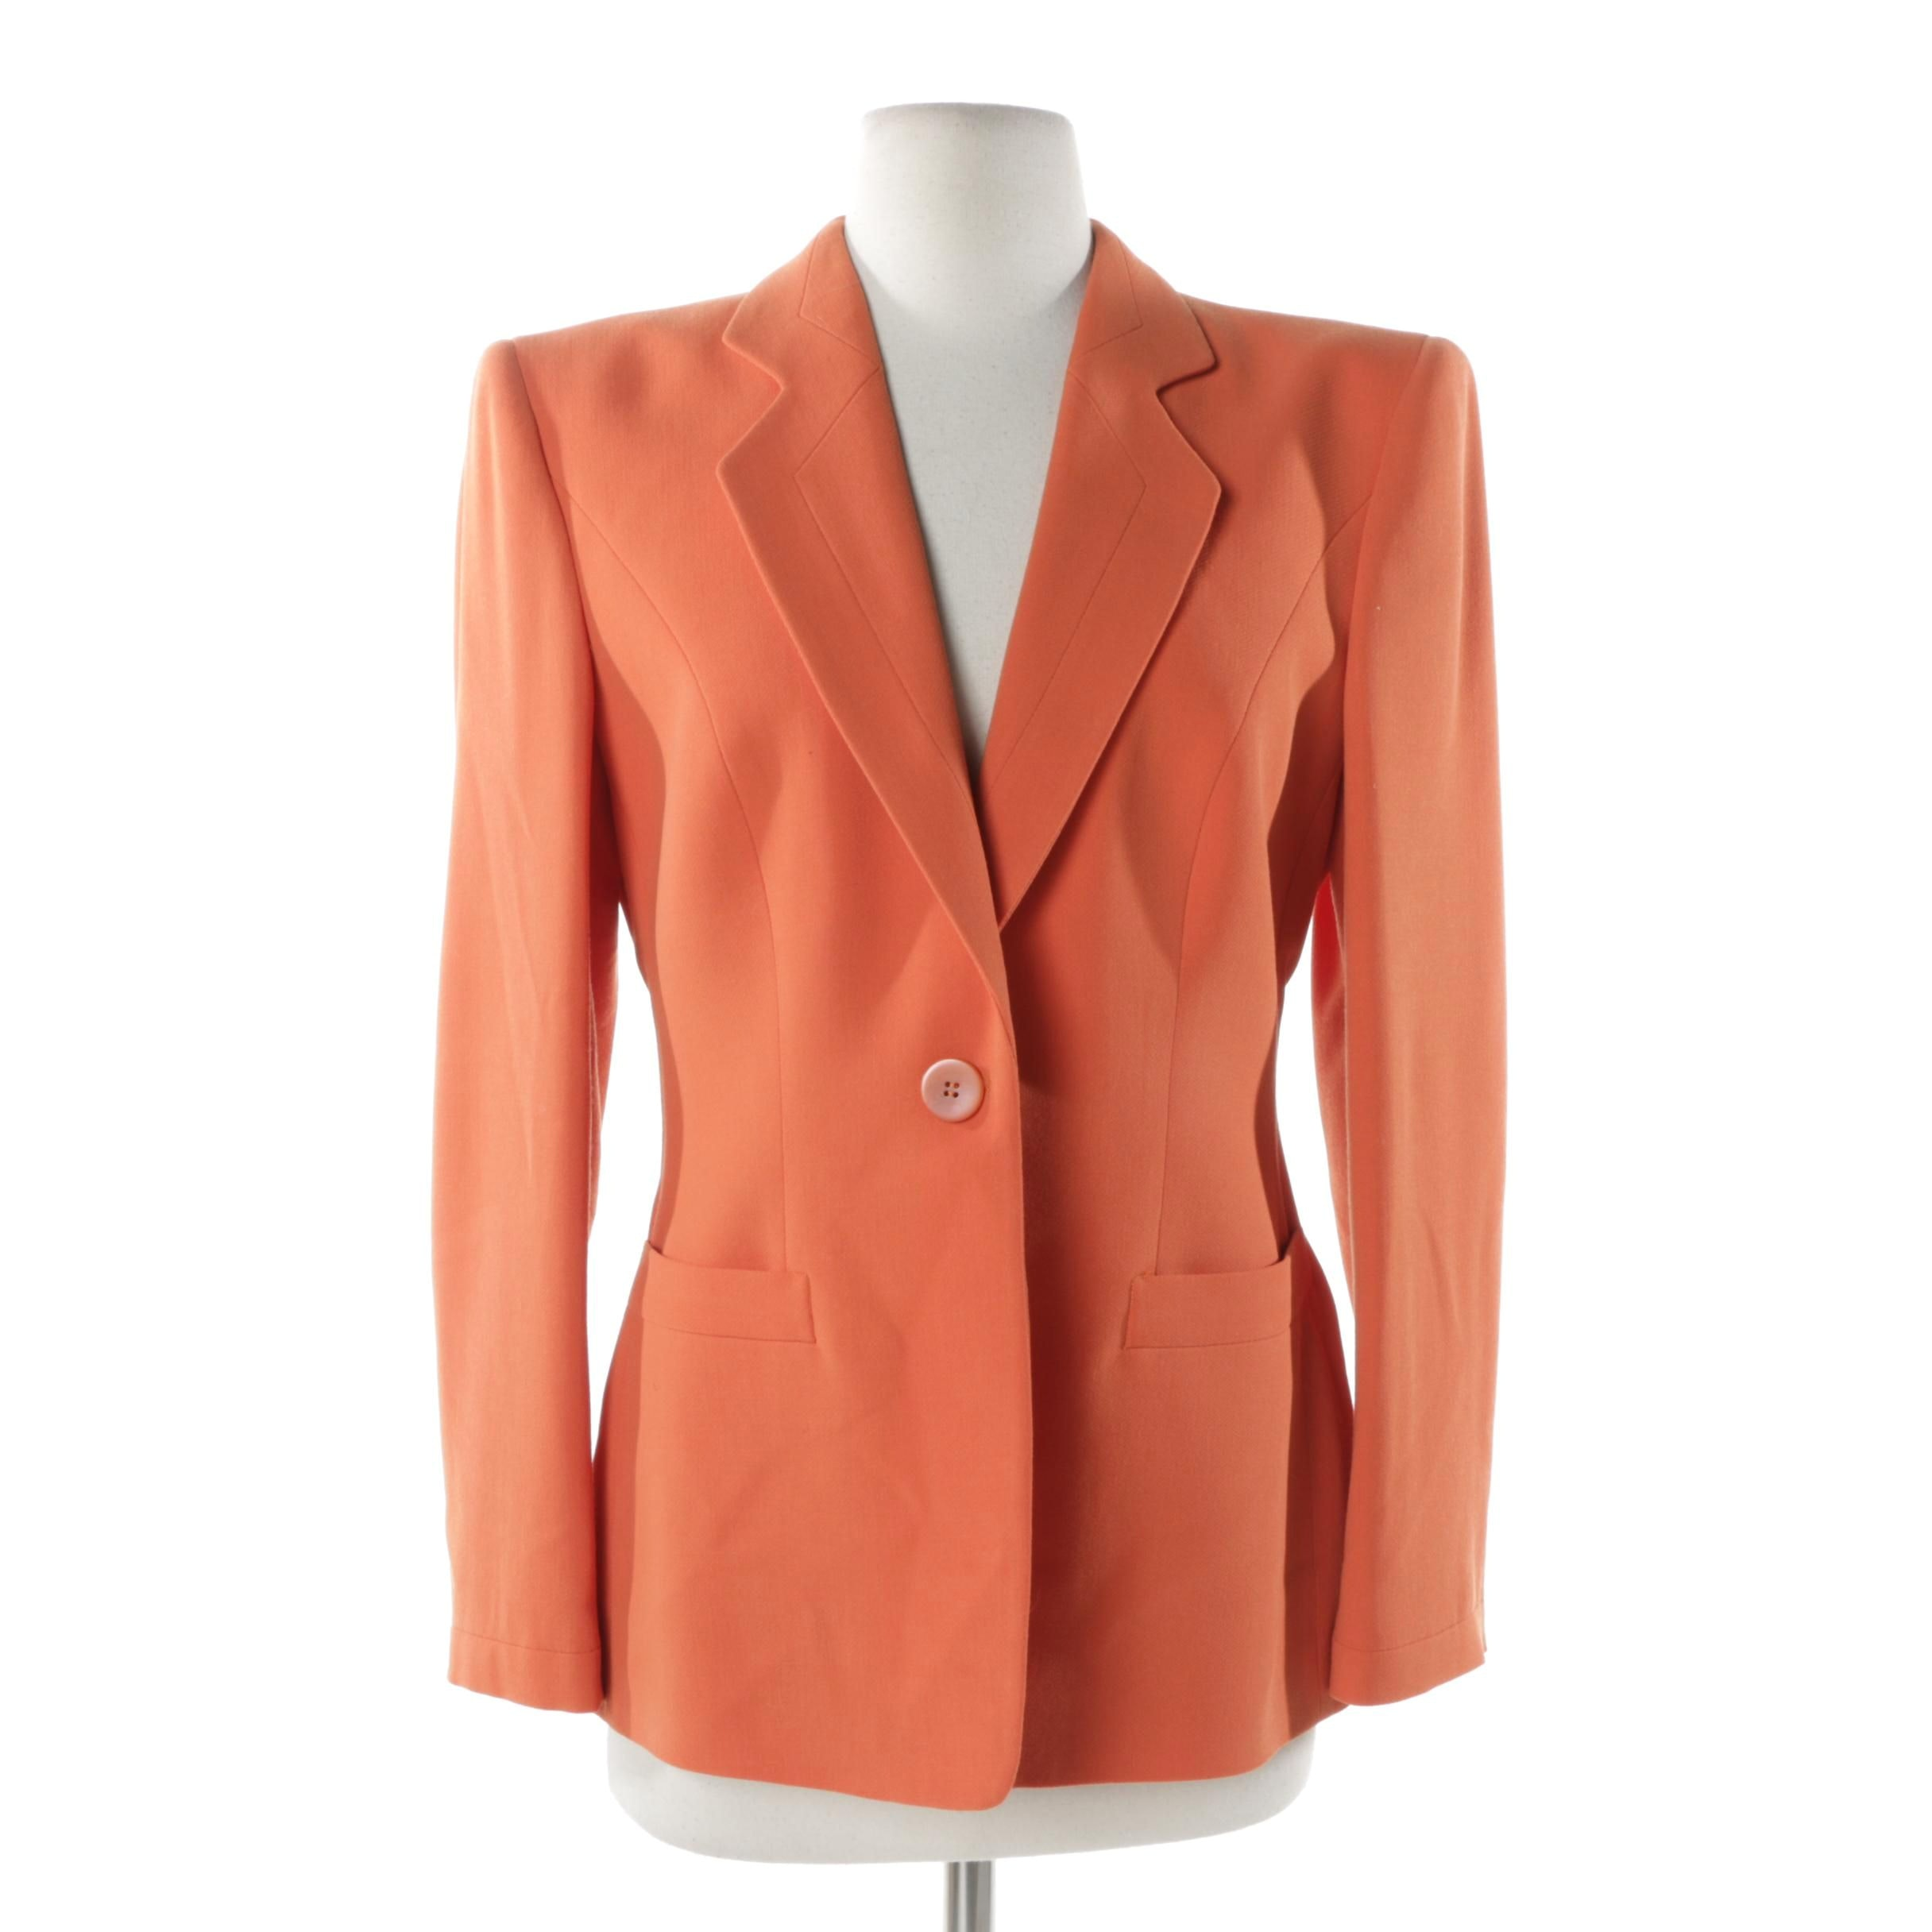 Women's Giorgio Armani Orange Wool Blazer